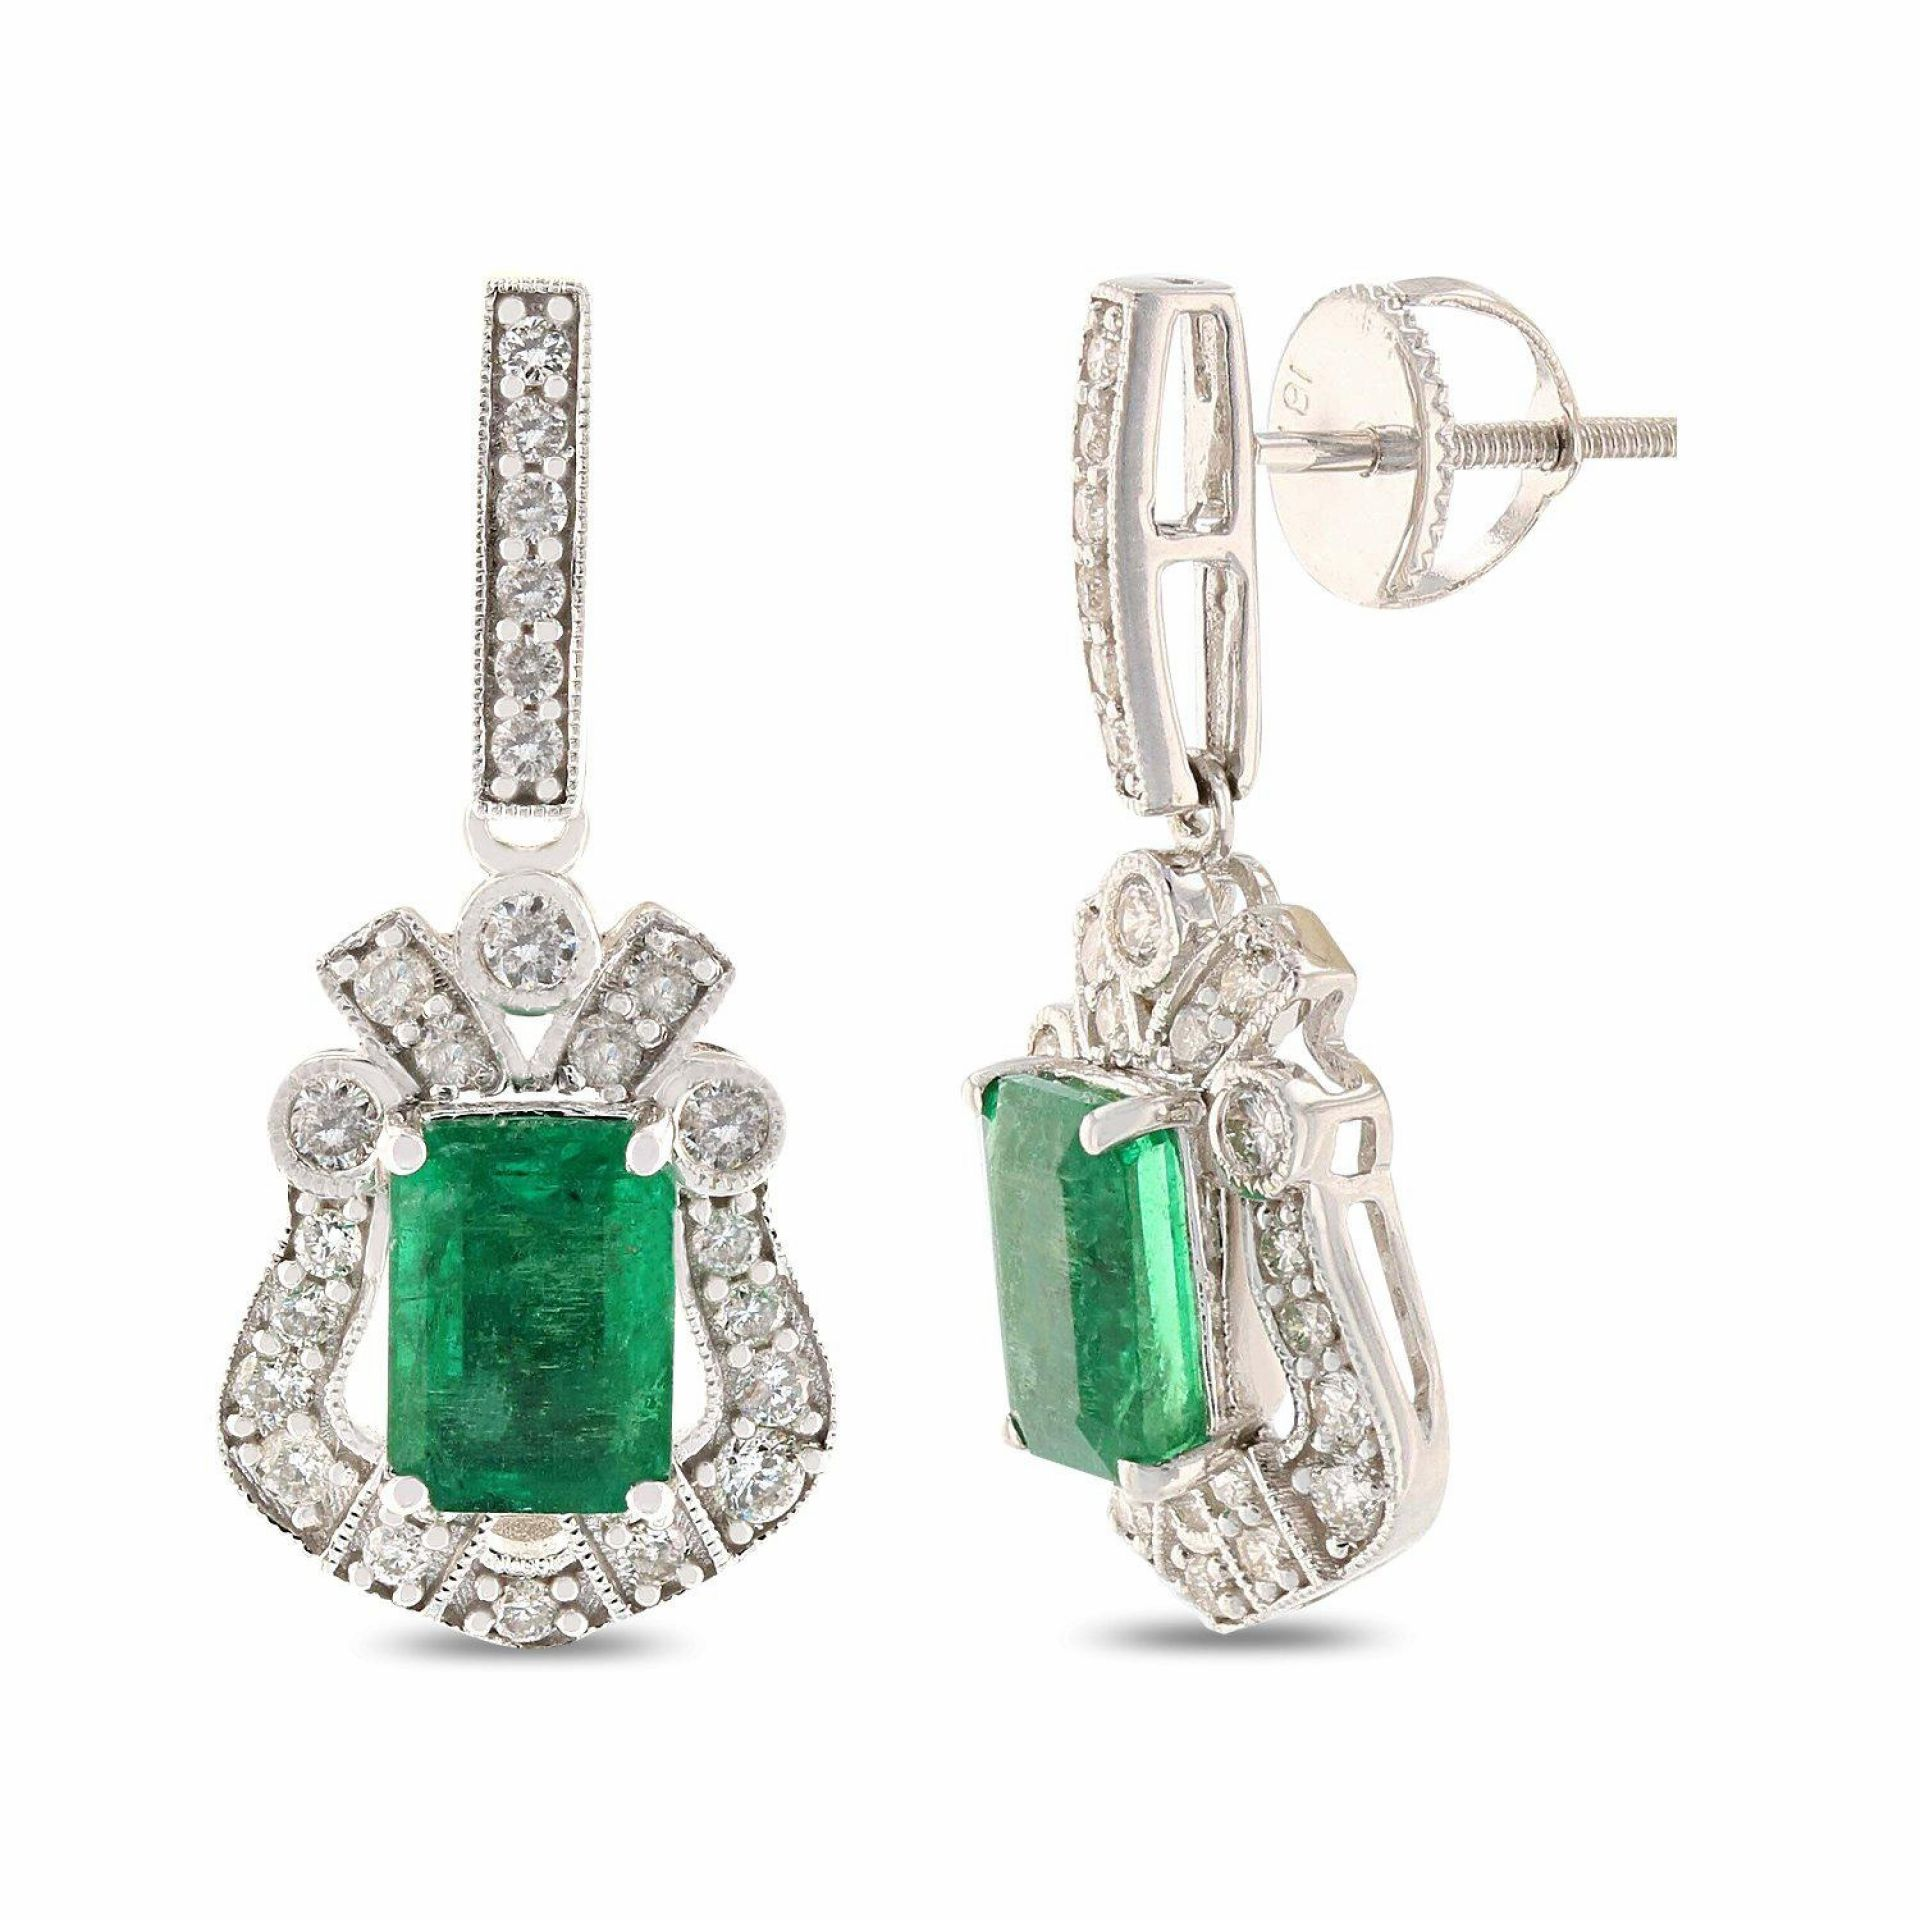 1.83ctw Emerald and 0.65ctw Diamond 18K White Gold Earrings